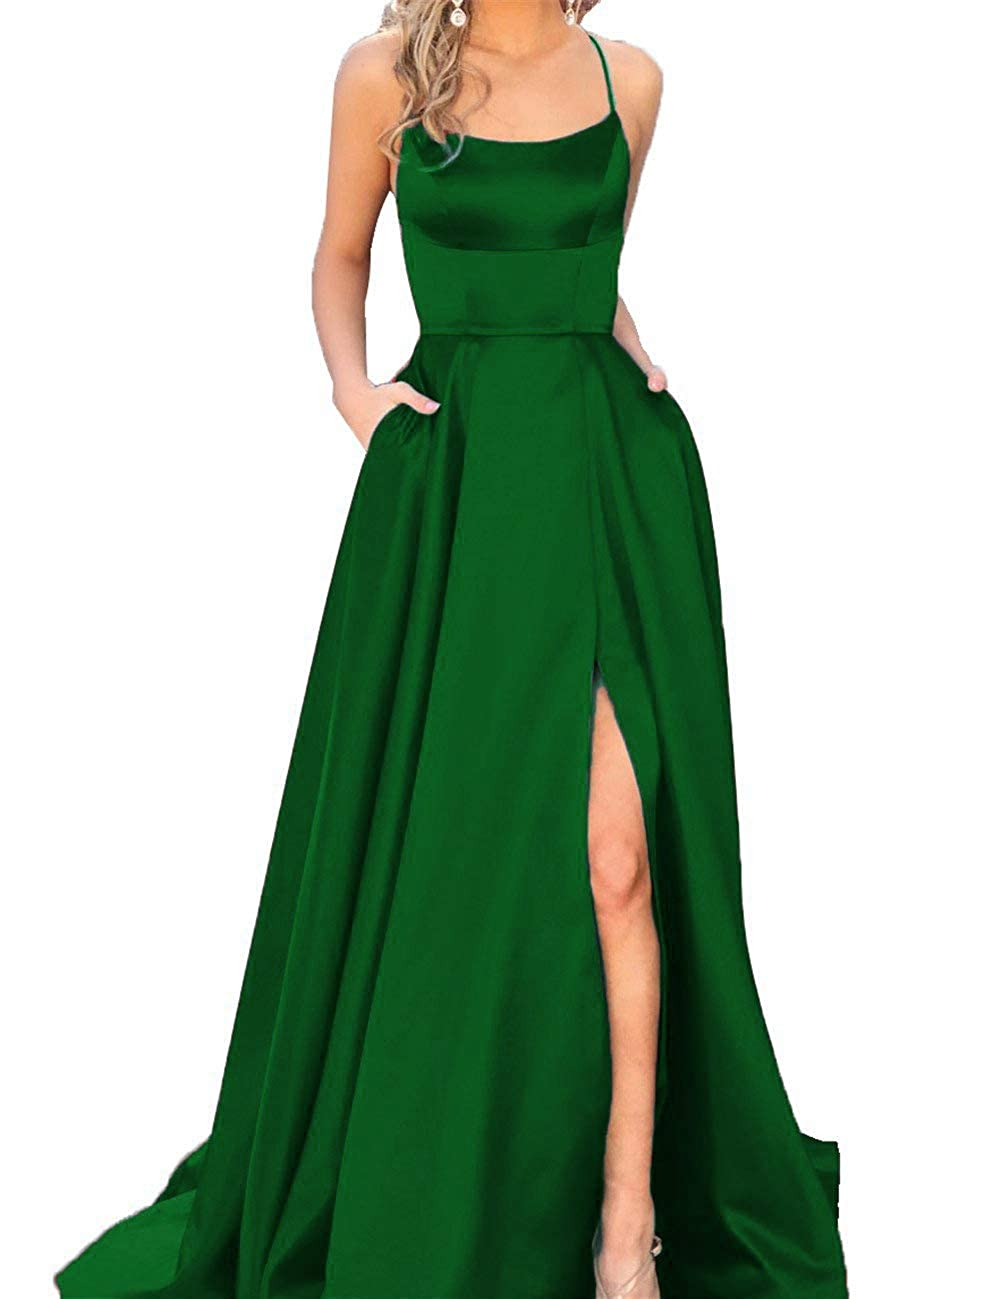 Dark Green Fanciest Women's Halter Slit Satin Prom Dresses Long Backless Evening Formal Gowns